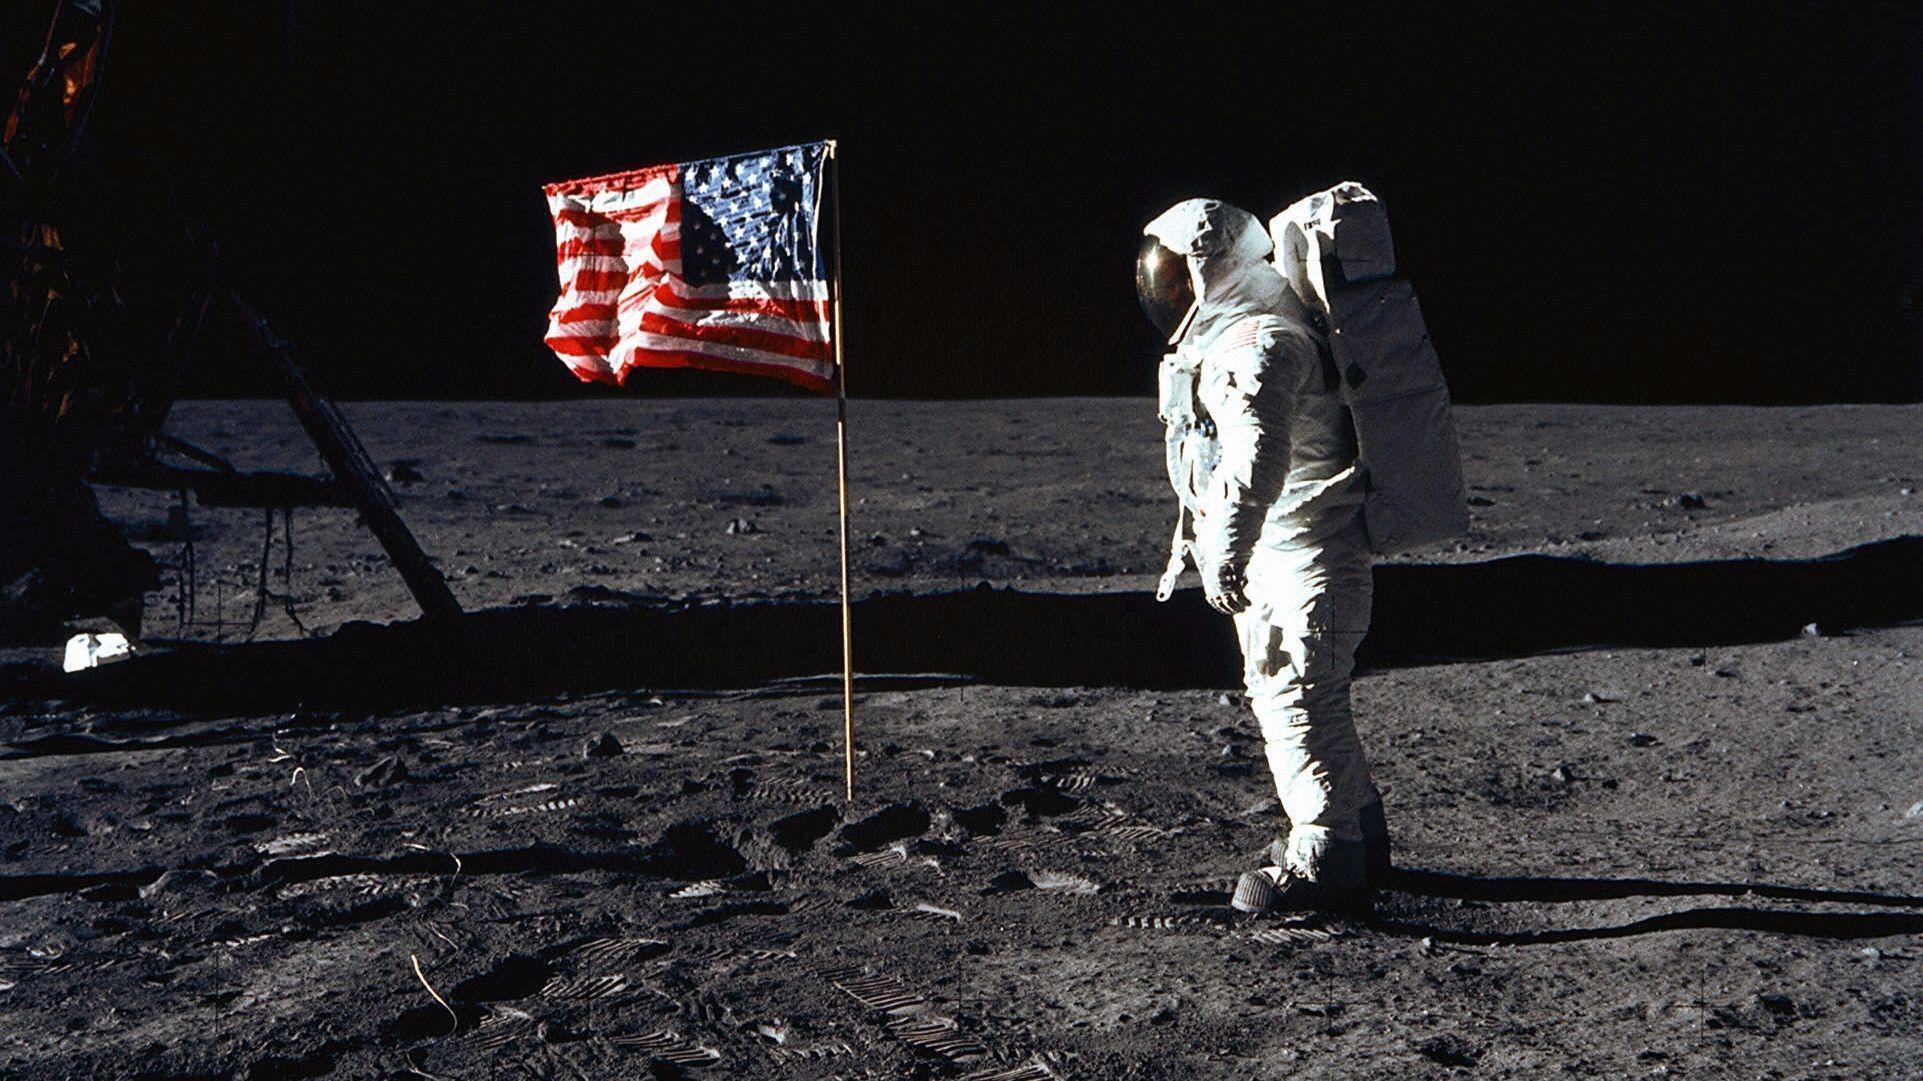 ac5b6864df25 NASA and flag lovers  Don t blast off on  First Man  – yet - Orlando  Sentinel